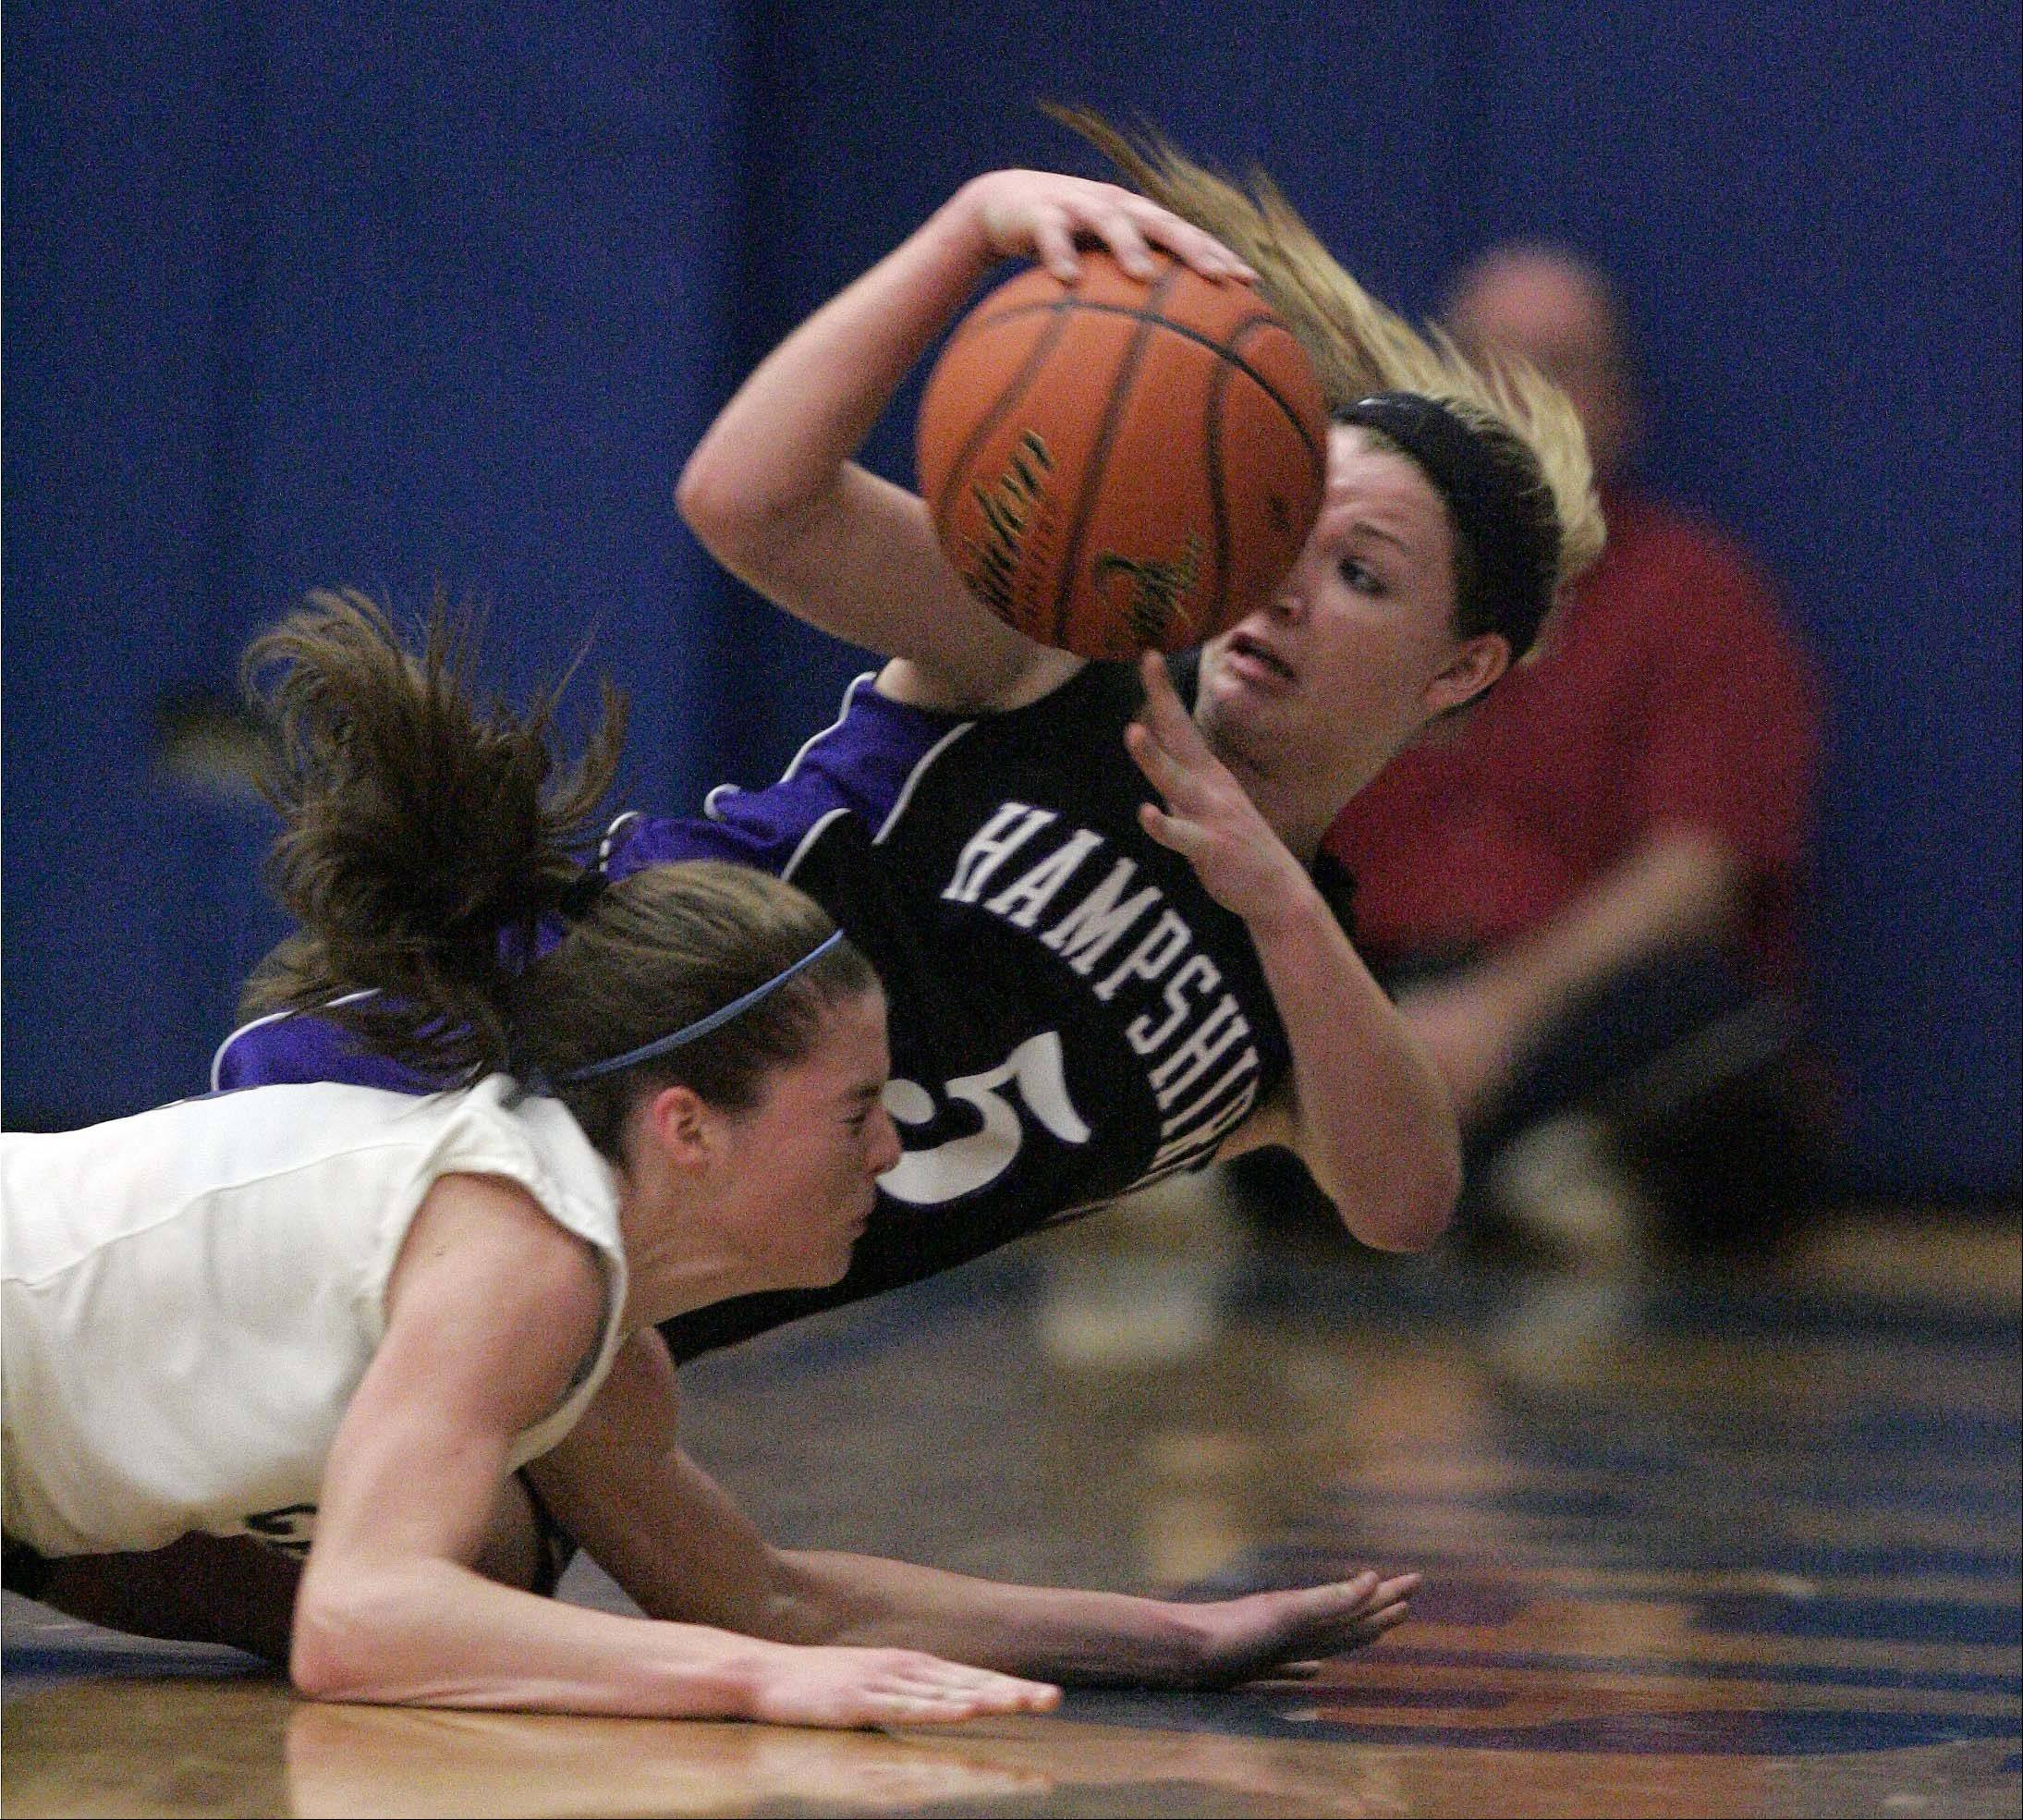 Hampshire guard Sara Finn, 5, dives for the ball as Burlington Central's Kayla Ross, 4, tries to gain control Saturday.